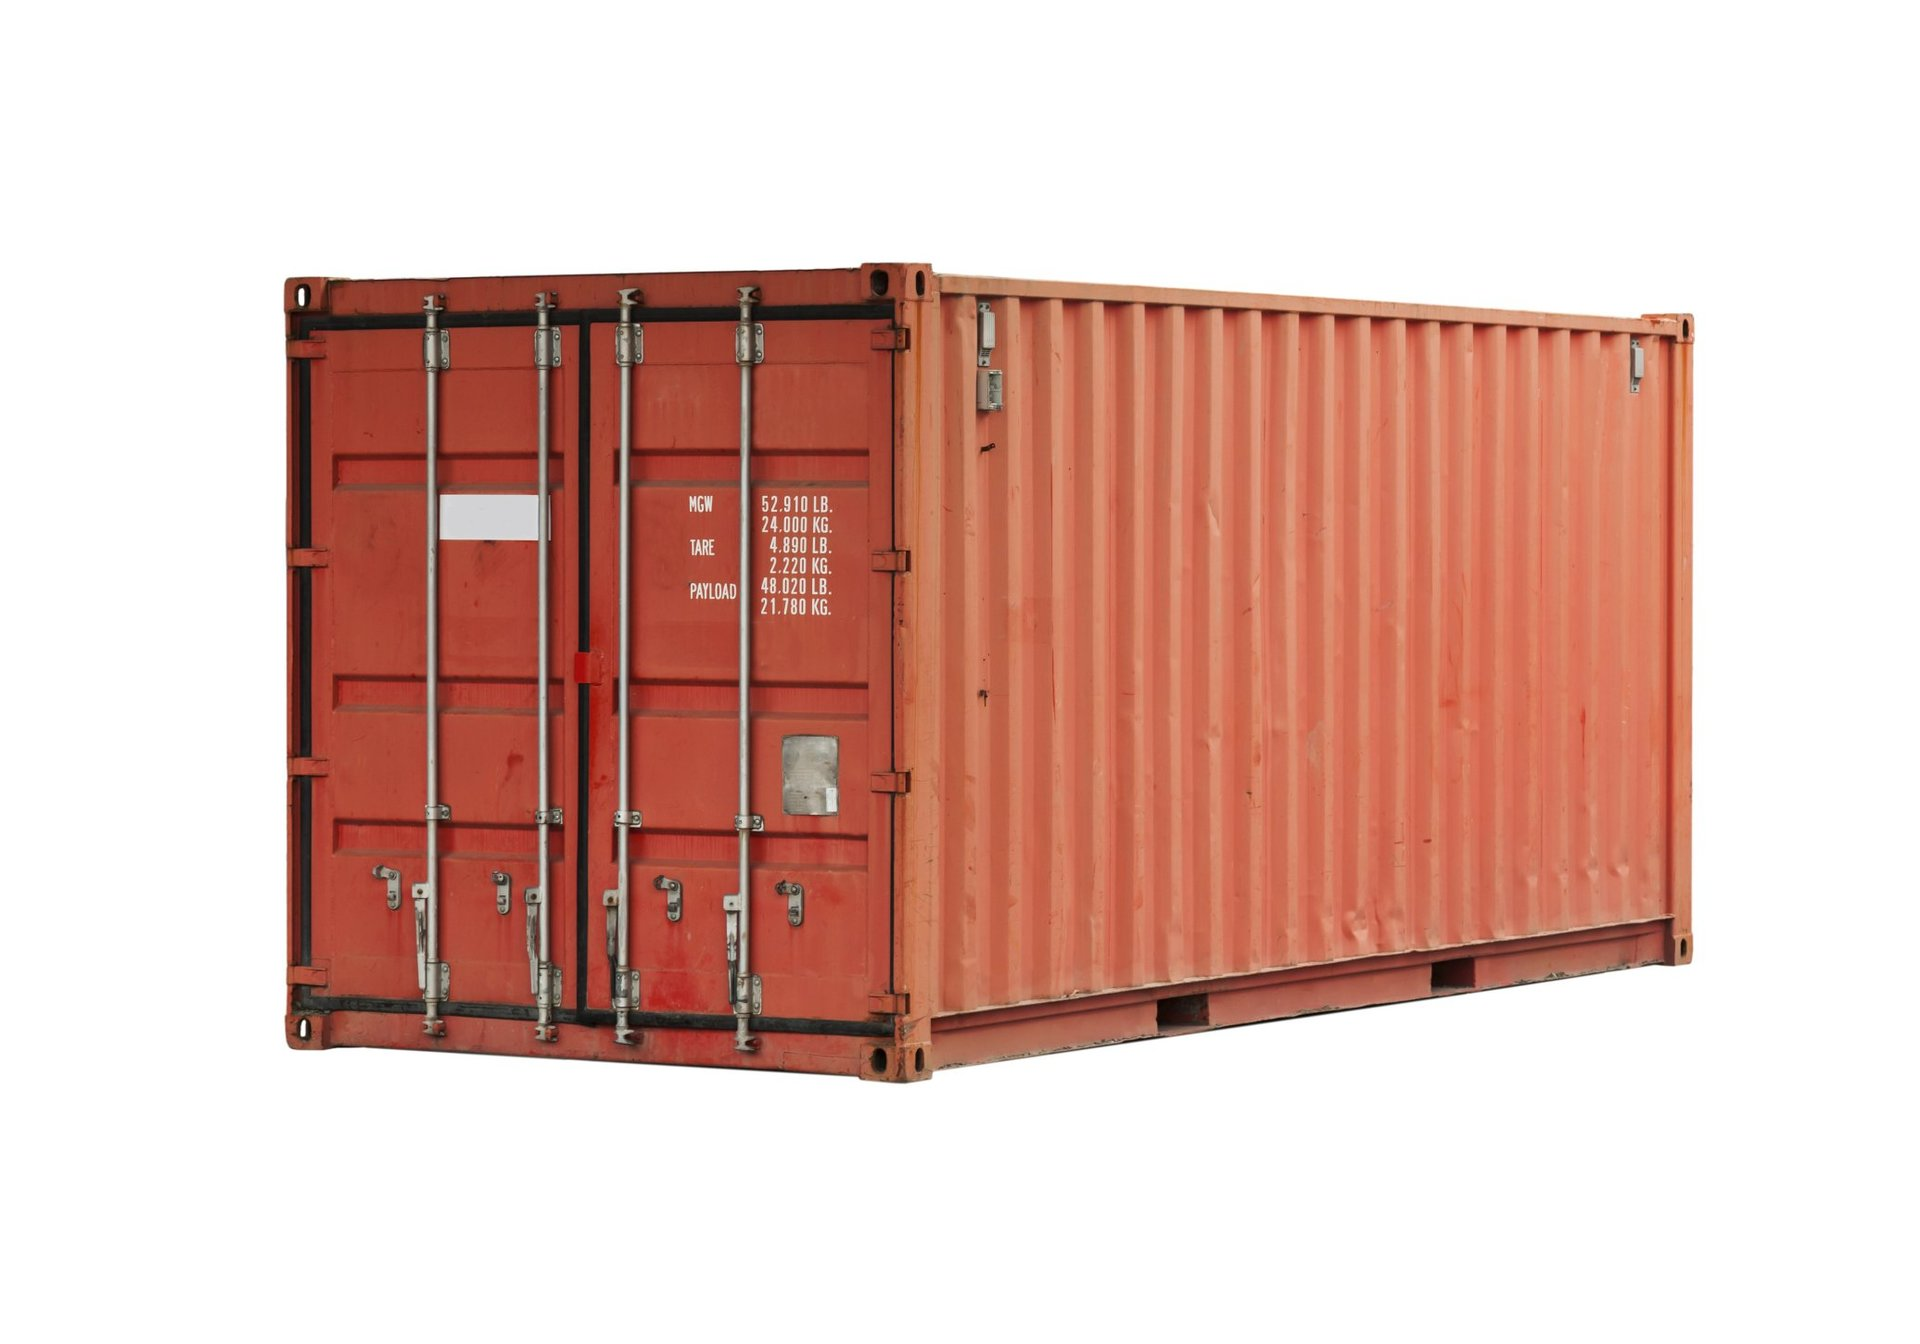 outside view of the storage container